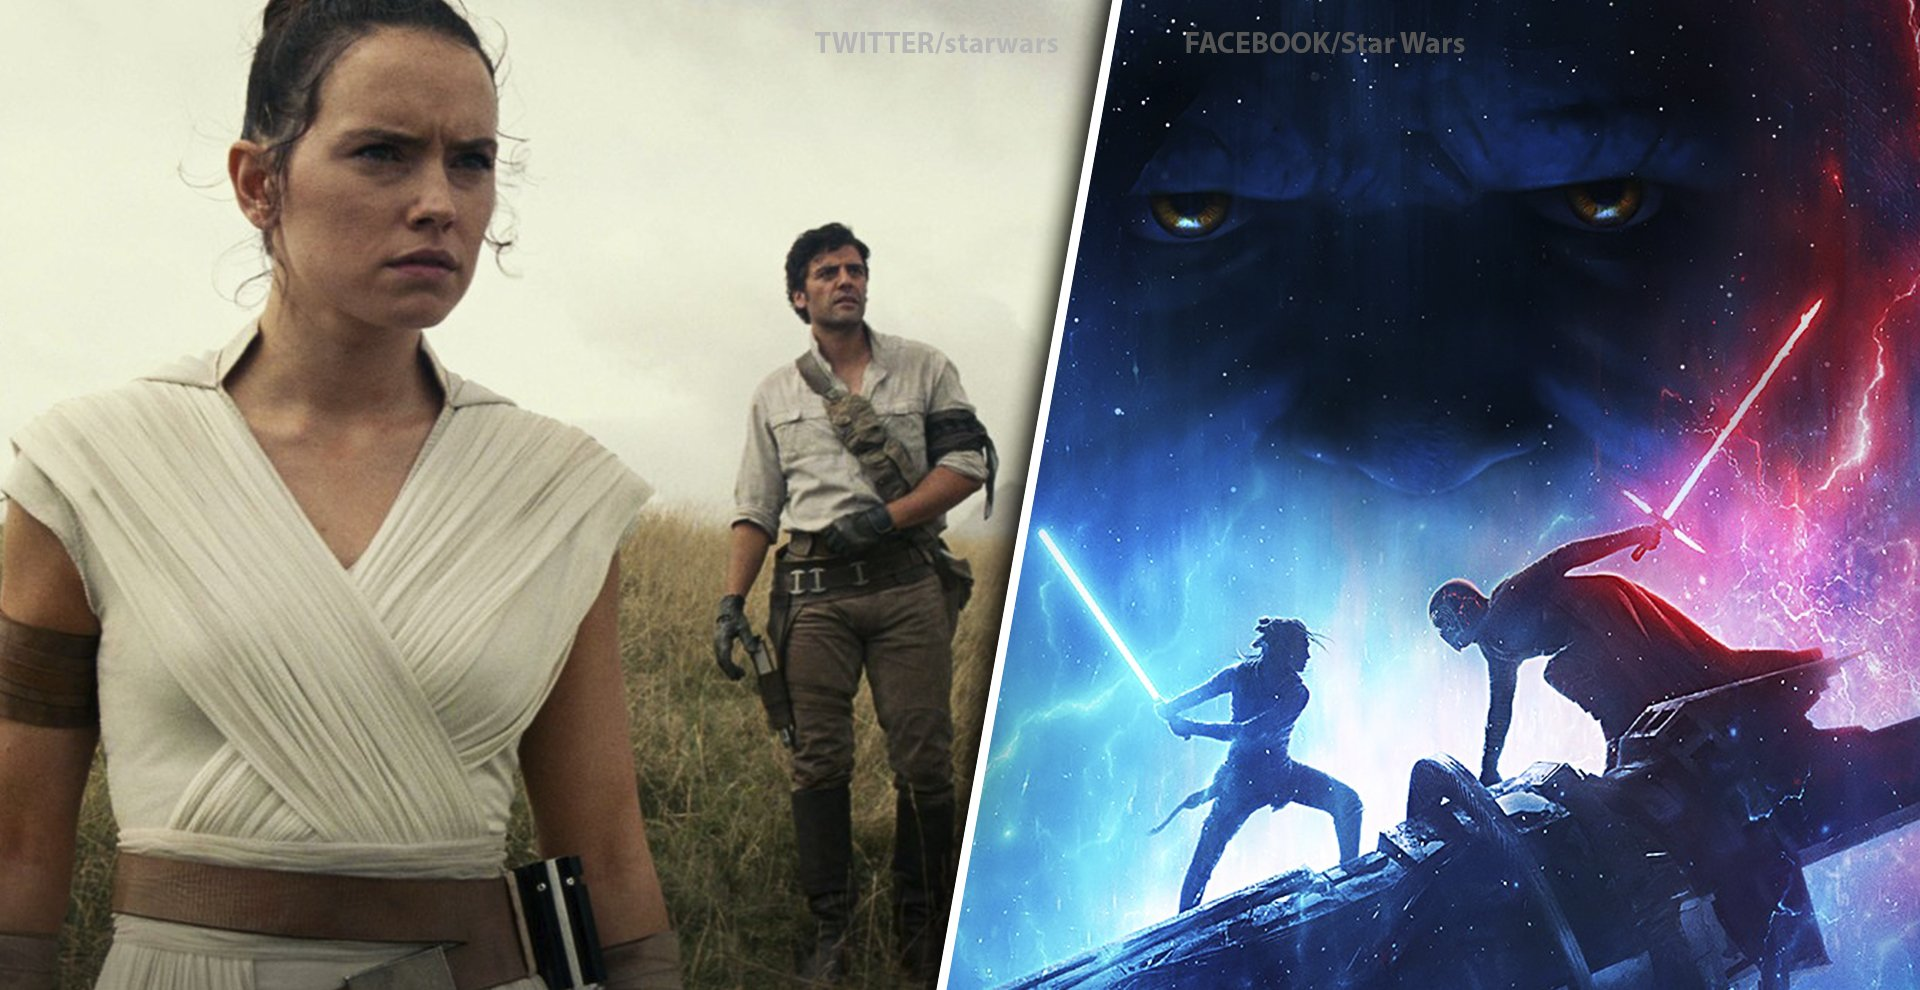 The Rise of Skywalker: 5 Best Theories About Star Wars 9